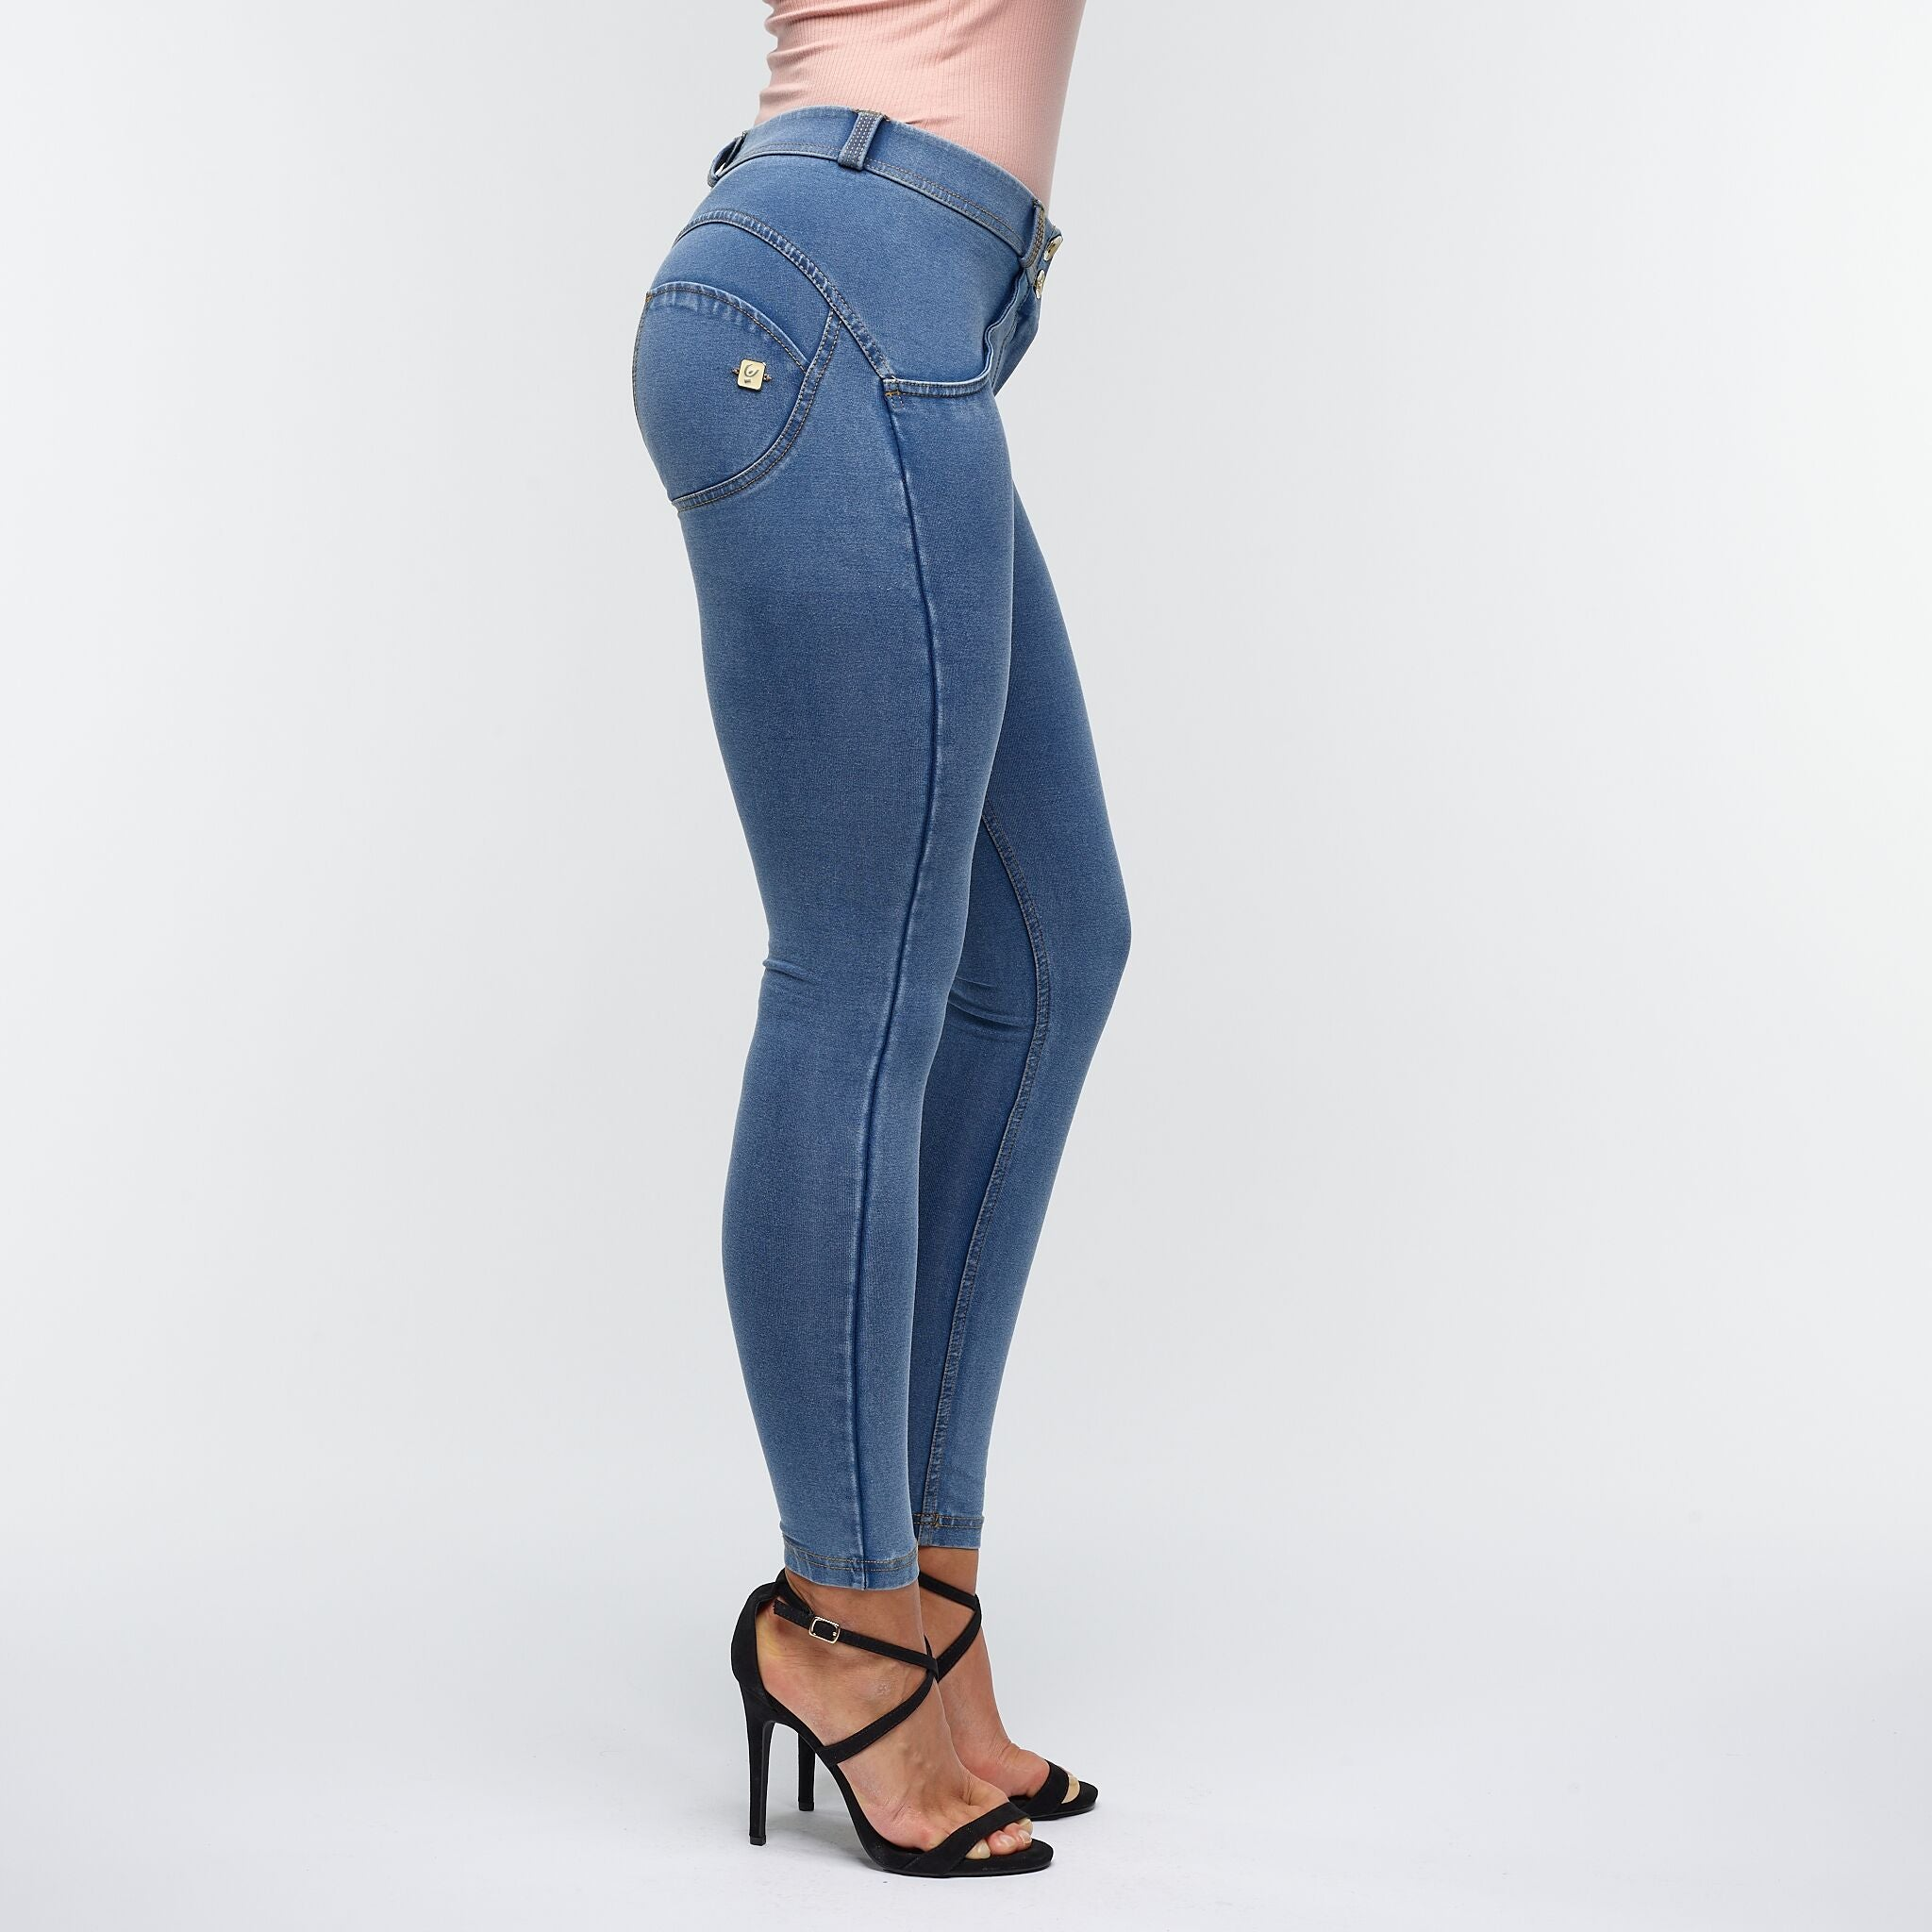 FREDDY WR.UP® 7/8 REGULAR WAIST - DENIM LYS